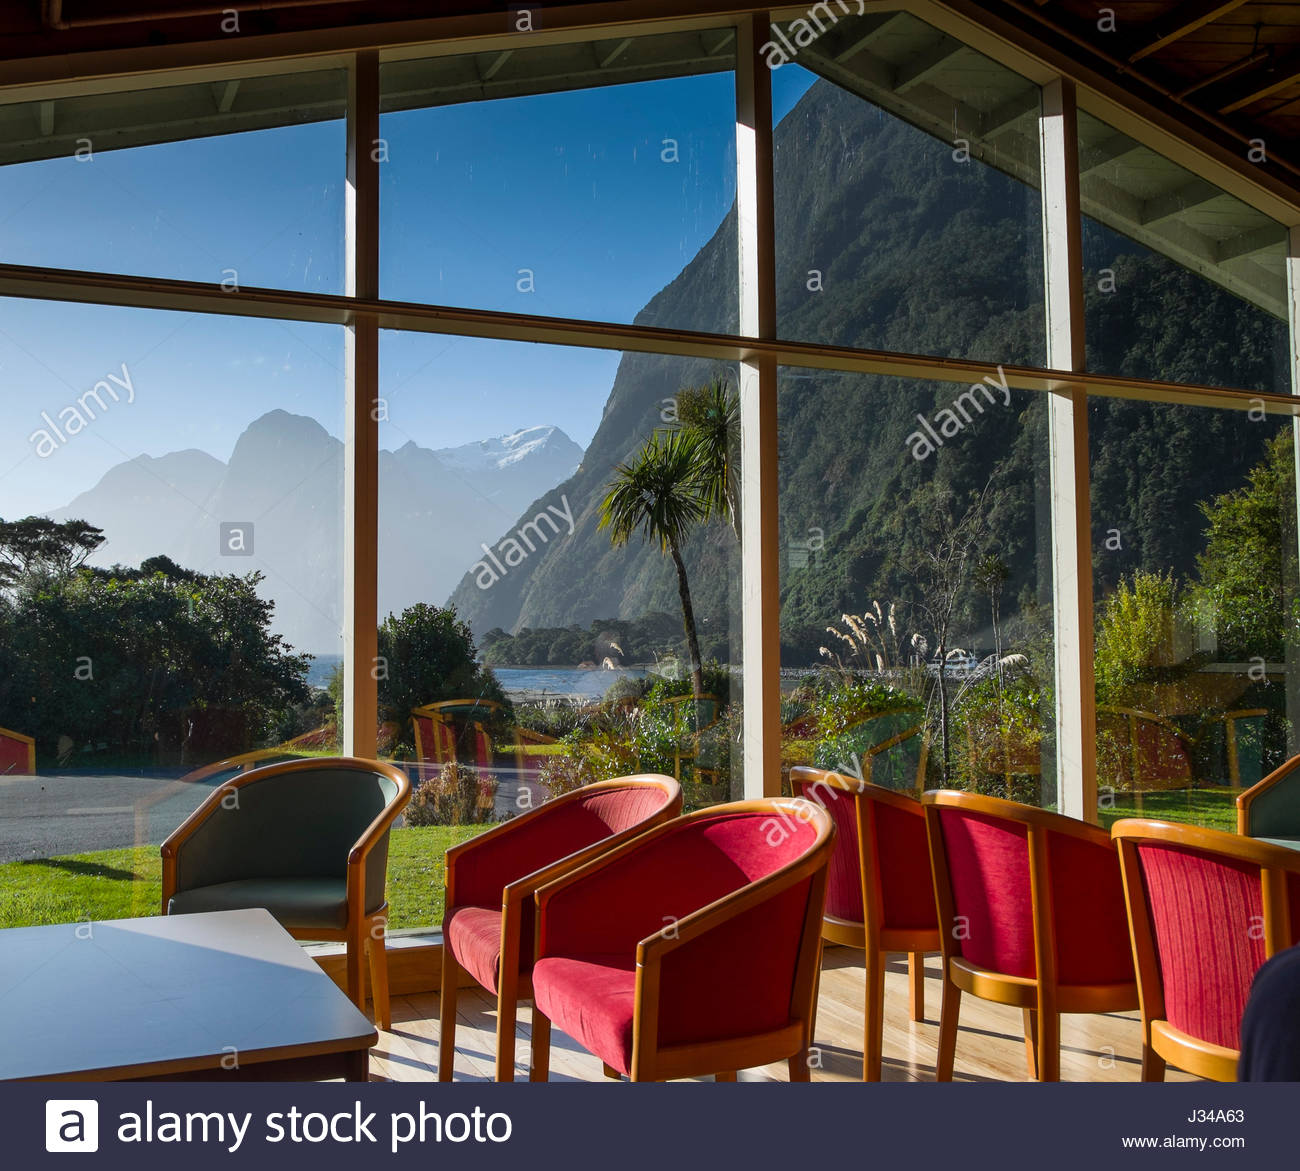 Mitre Peak Lodge, Milford Sound, Fiordland National Park, Southland, South Island, New Zealand Stock Photo